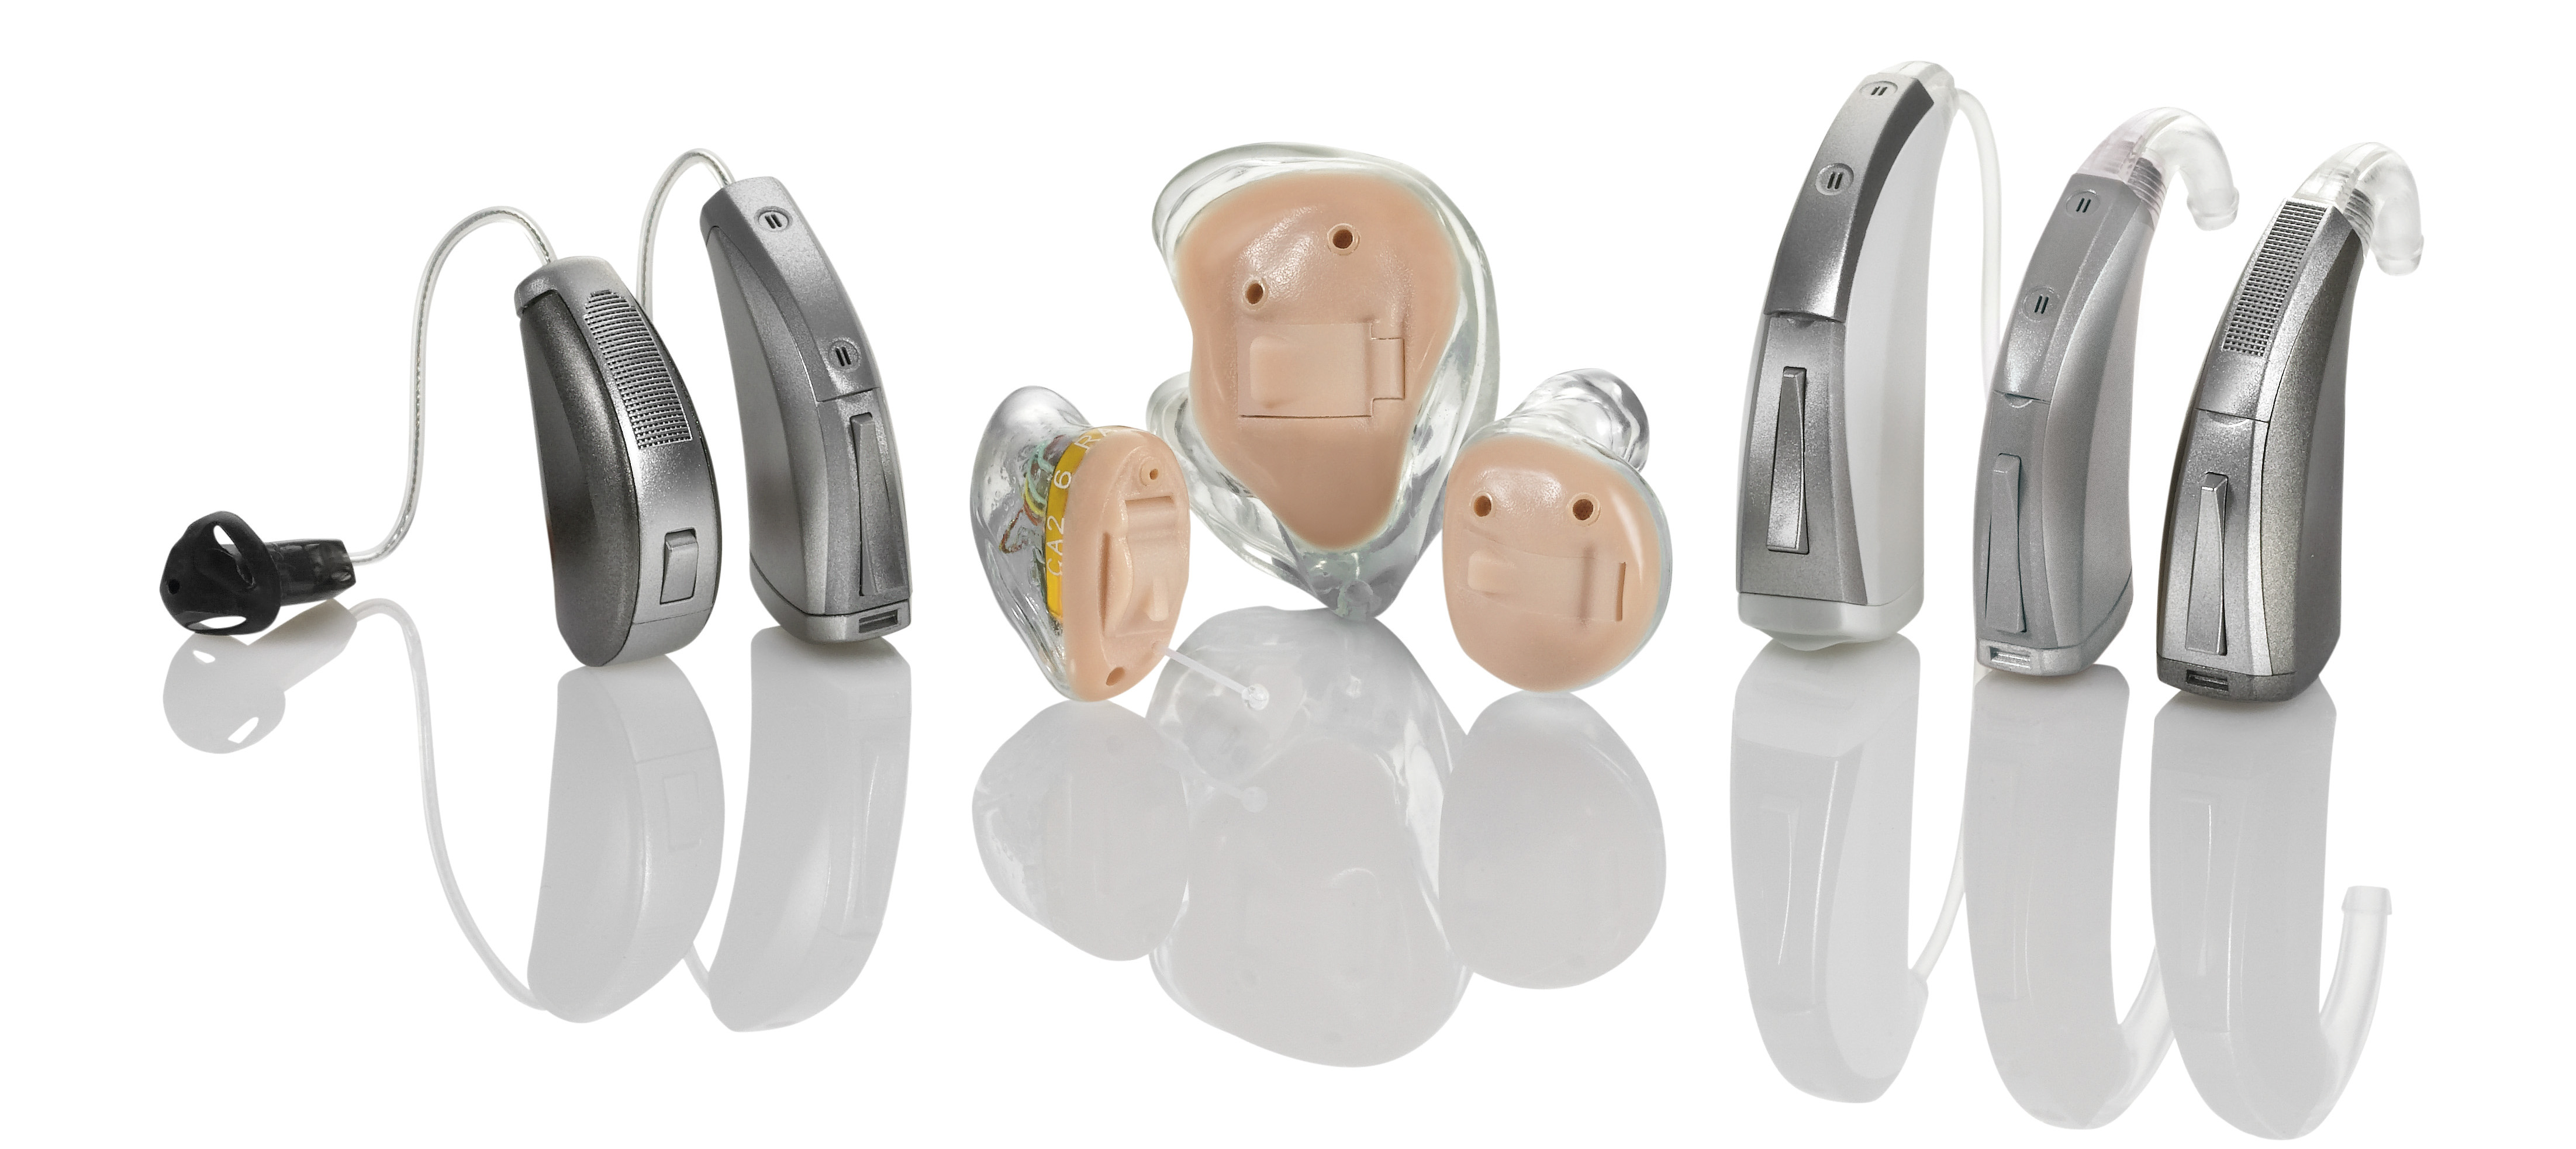 Digital <span>Hearing Loss Solutions</span>